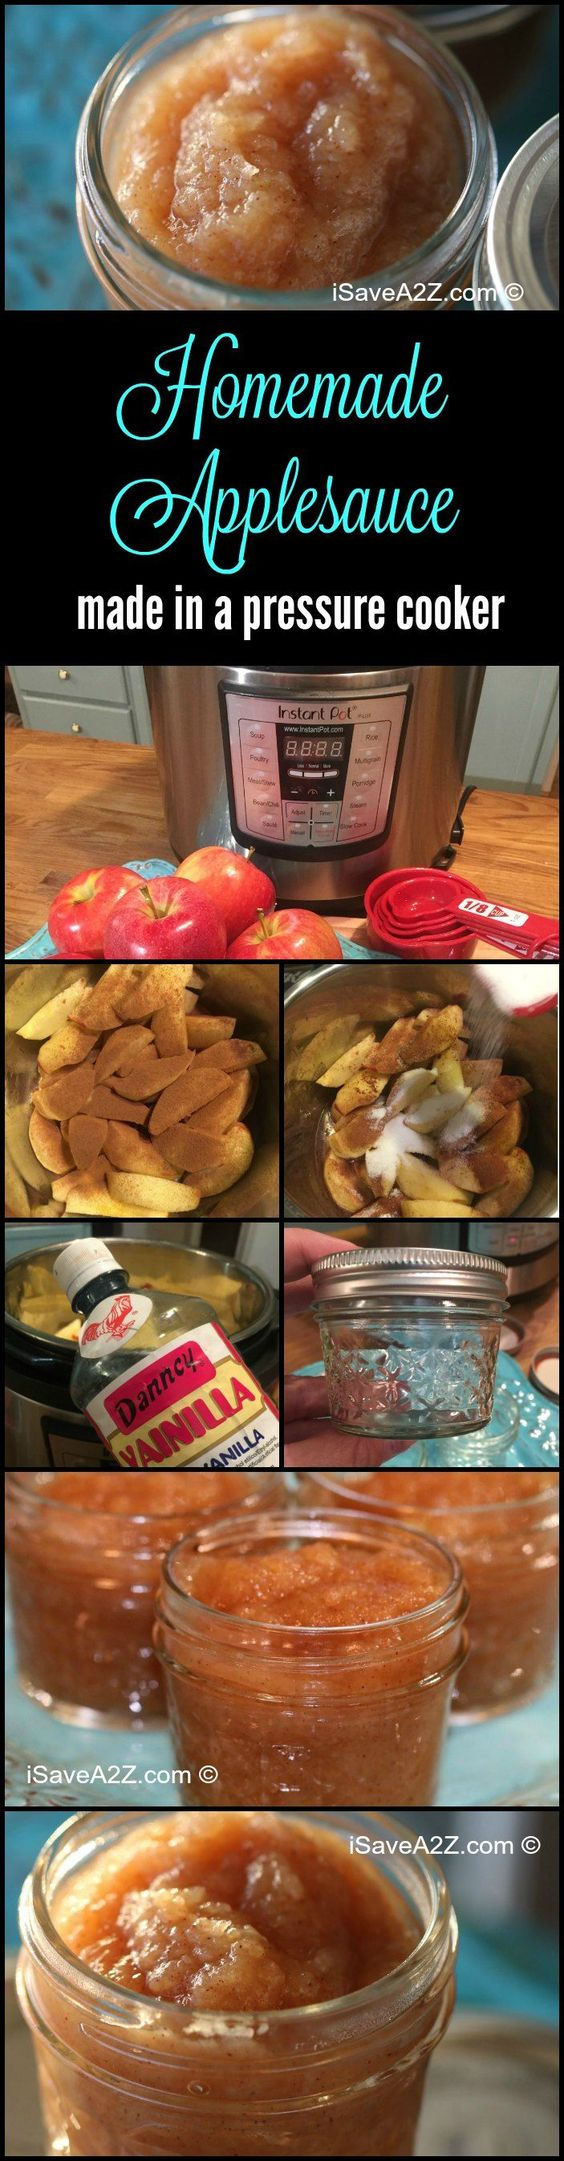 Homemade Pressure Cooker Applesauce Recipe - this would make an excellent baby food recipe!